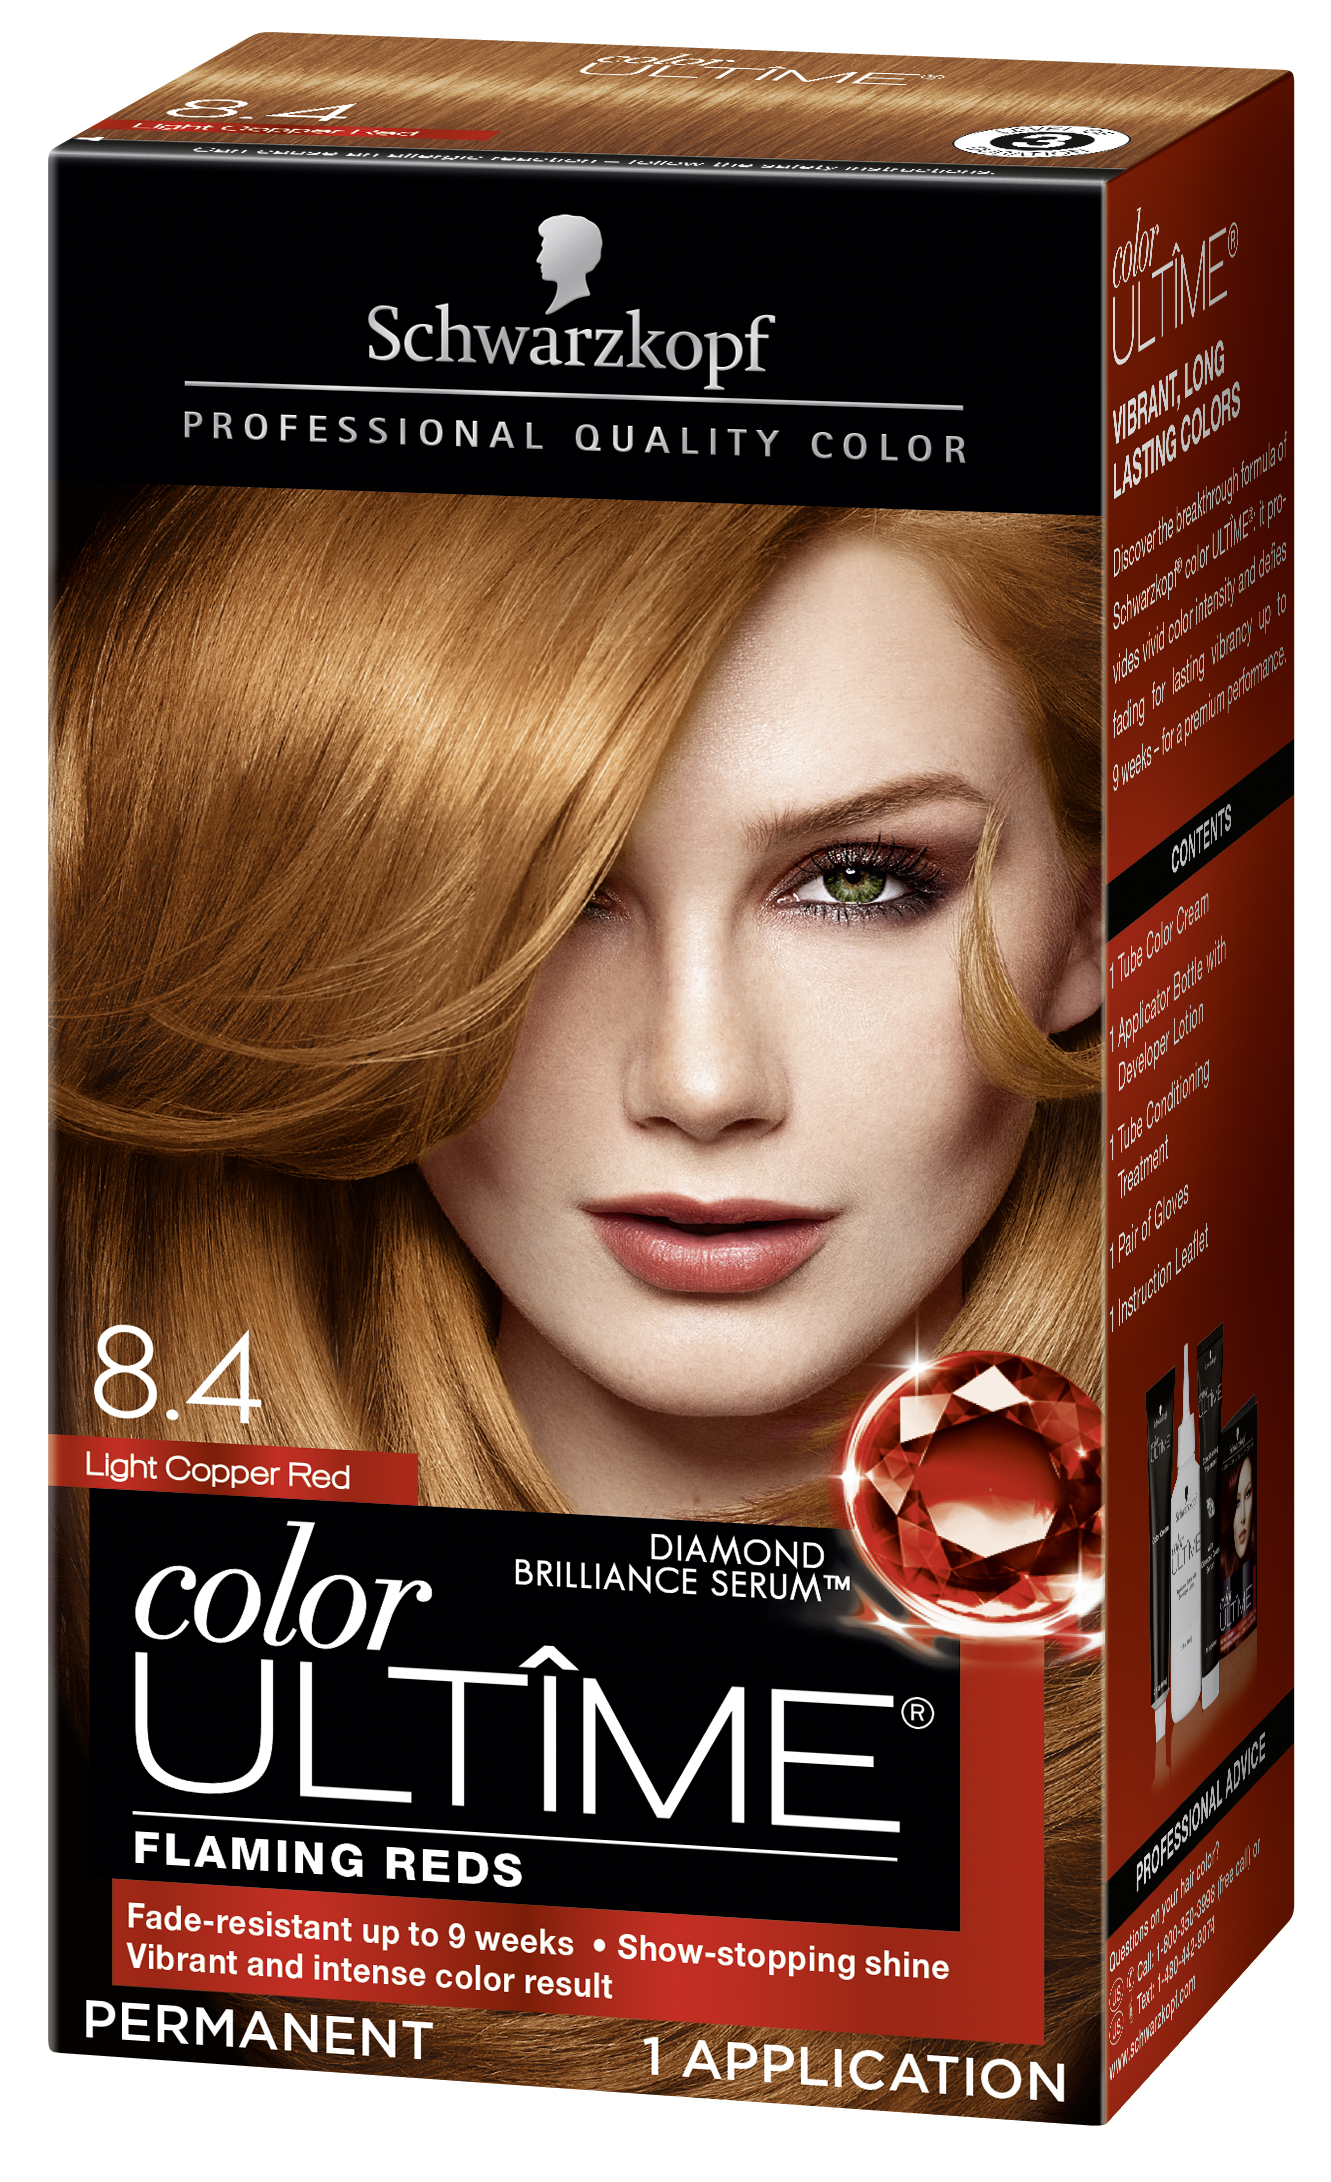 different color reds for hair burgundy schwarzkopf color ultime permanent hair cream 84 light copper red walmartcom